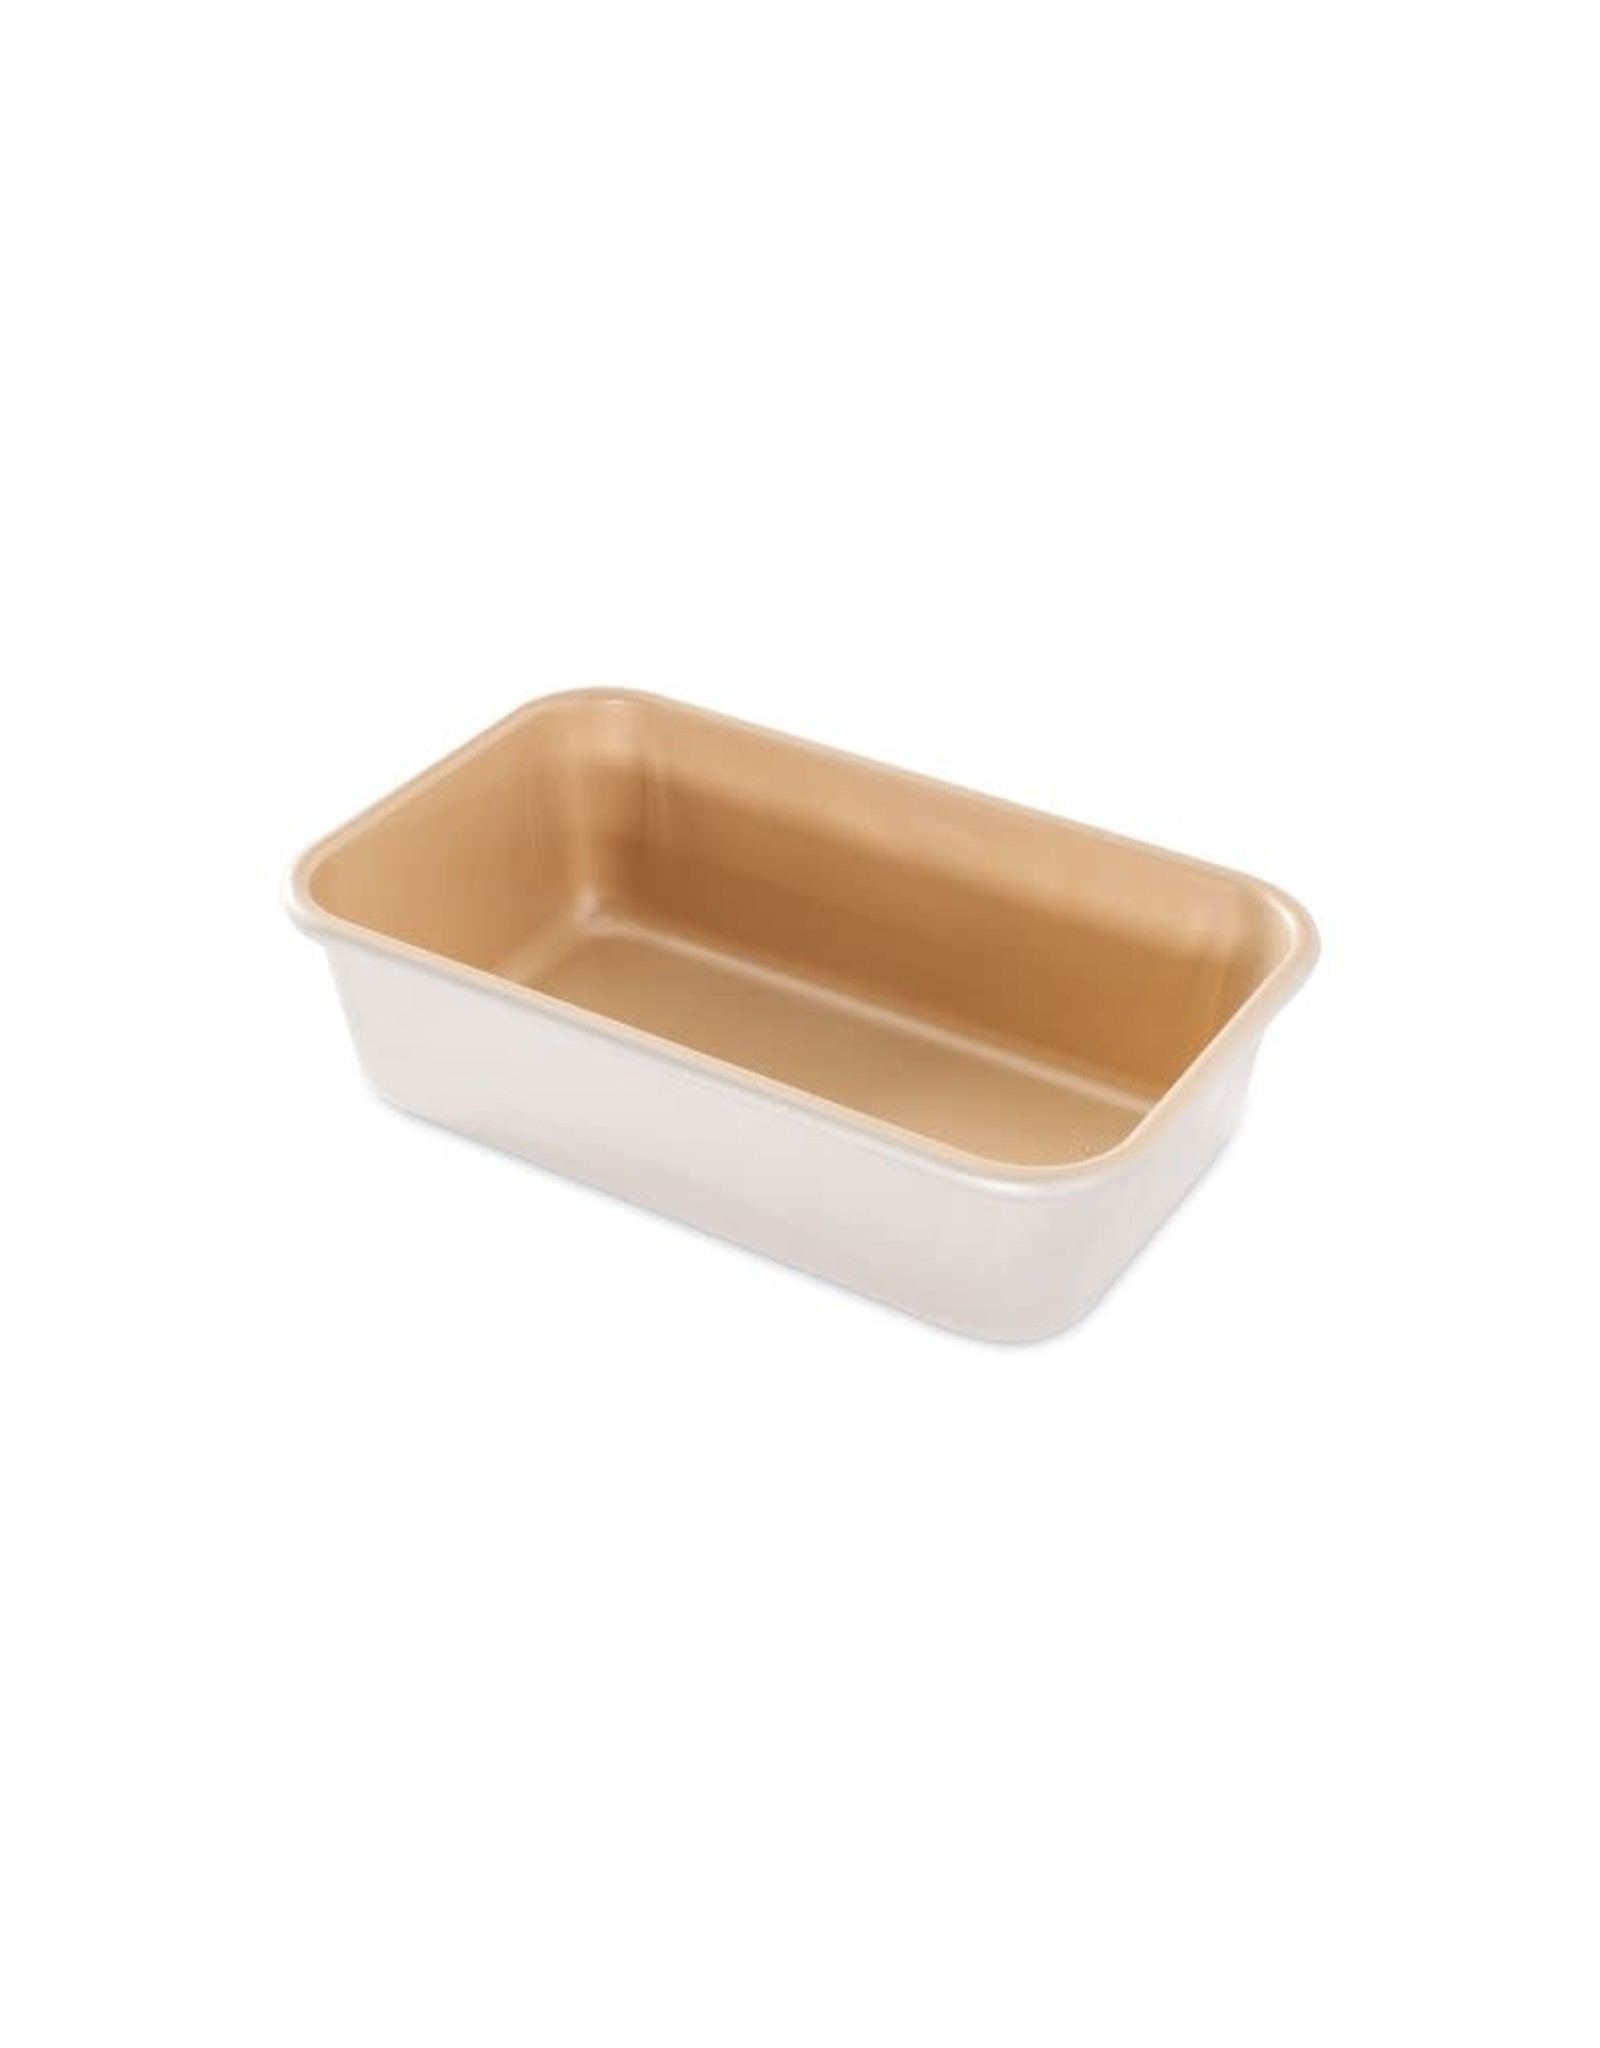 Nordicware NORDICWARE Large 1.5 Pound Loaf Pan